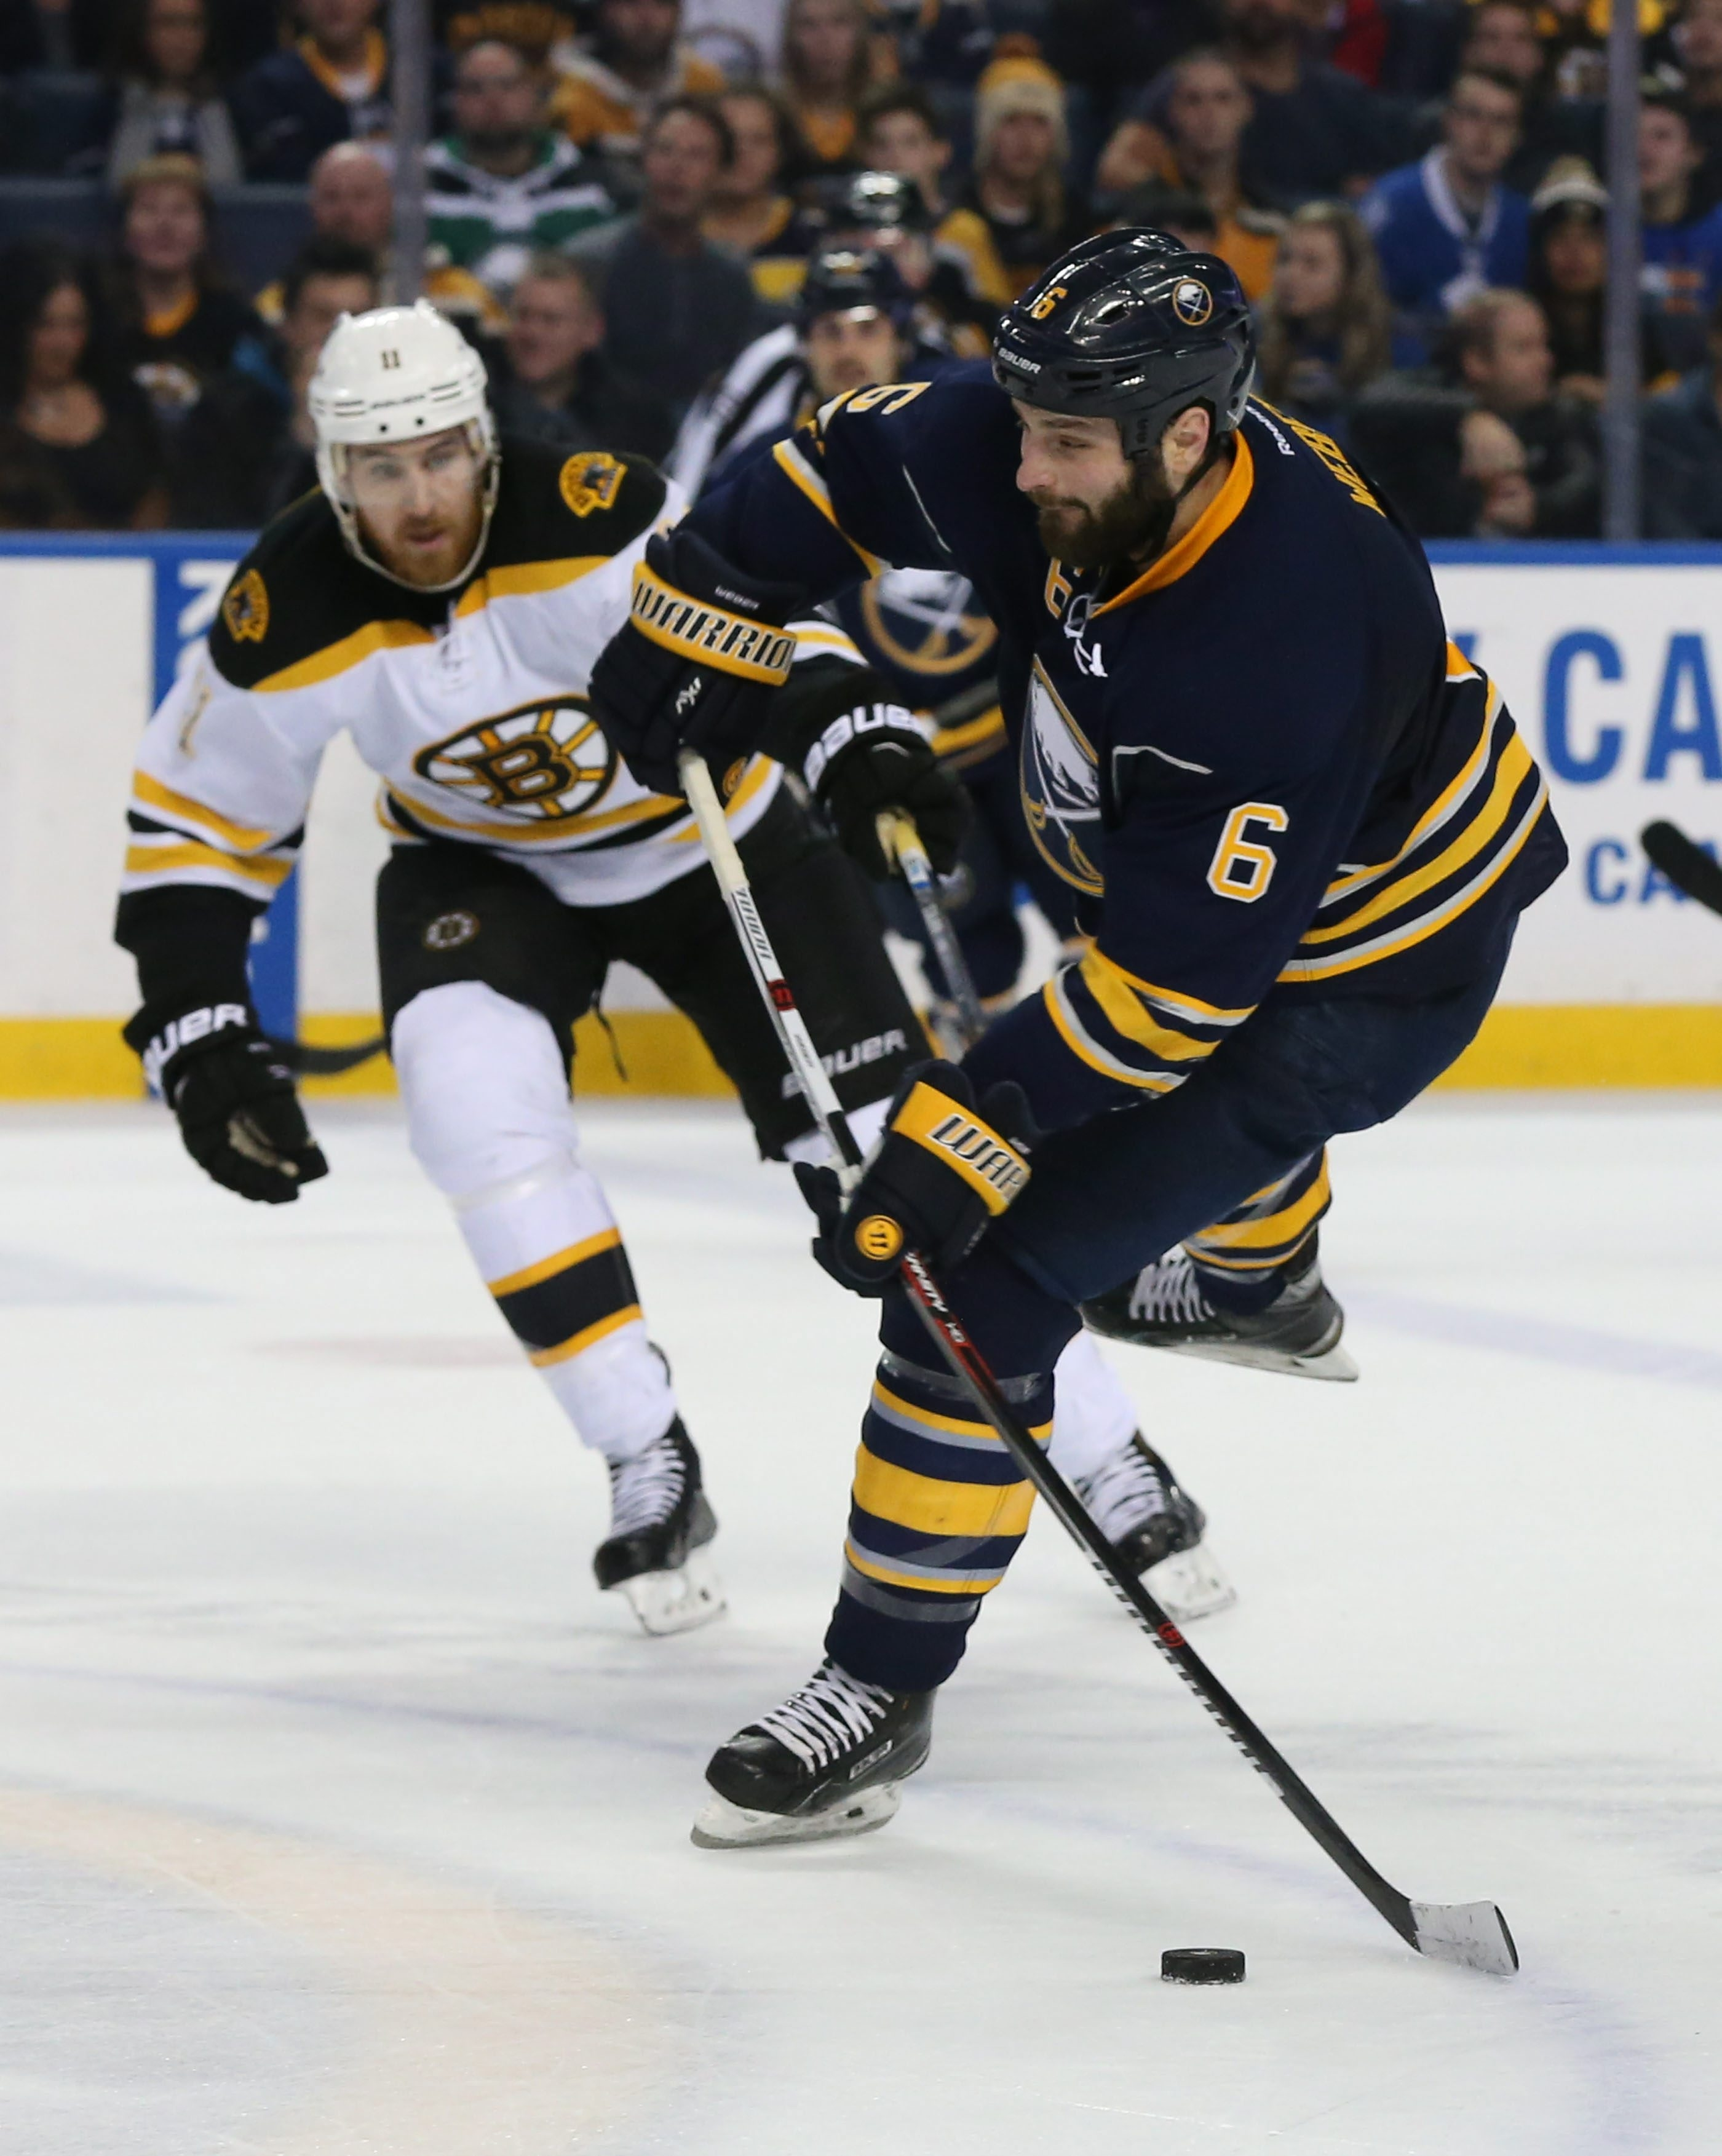 Mike Weber shoots the puck in the first period against the Boston Bruins Friday at First Niagara Center.